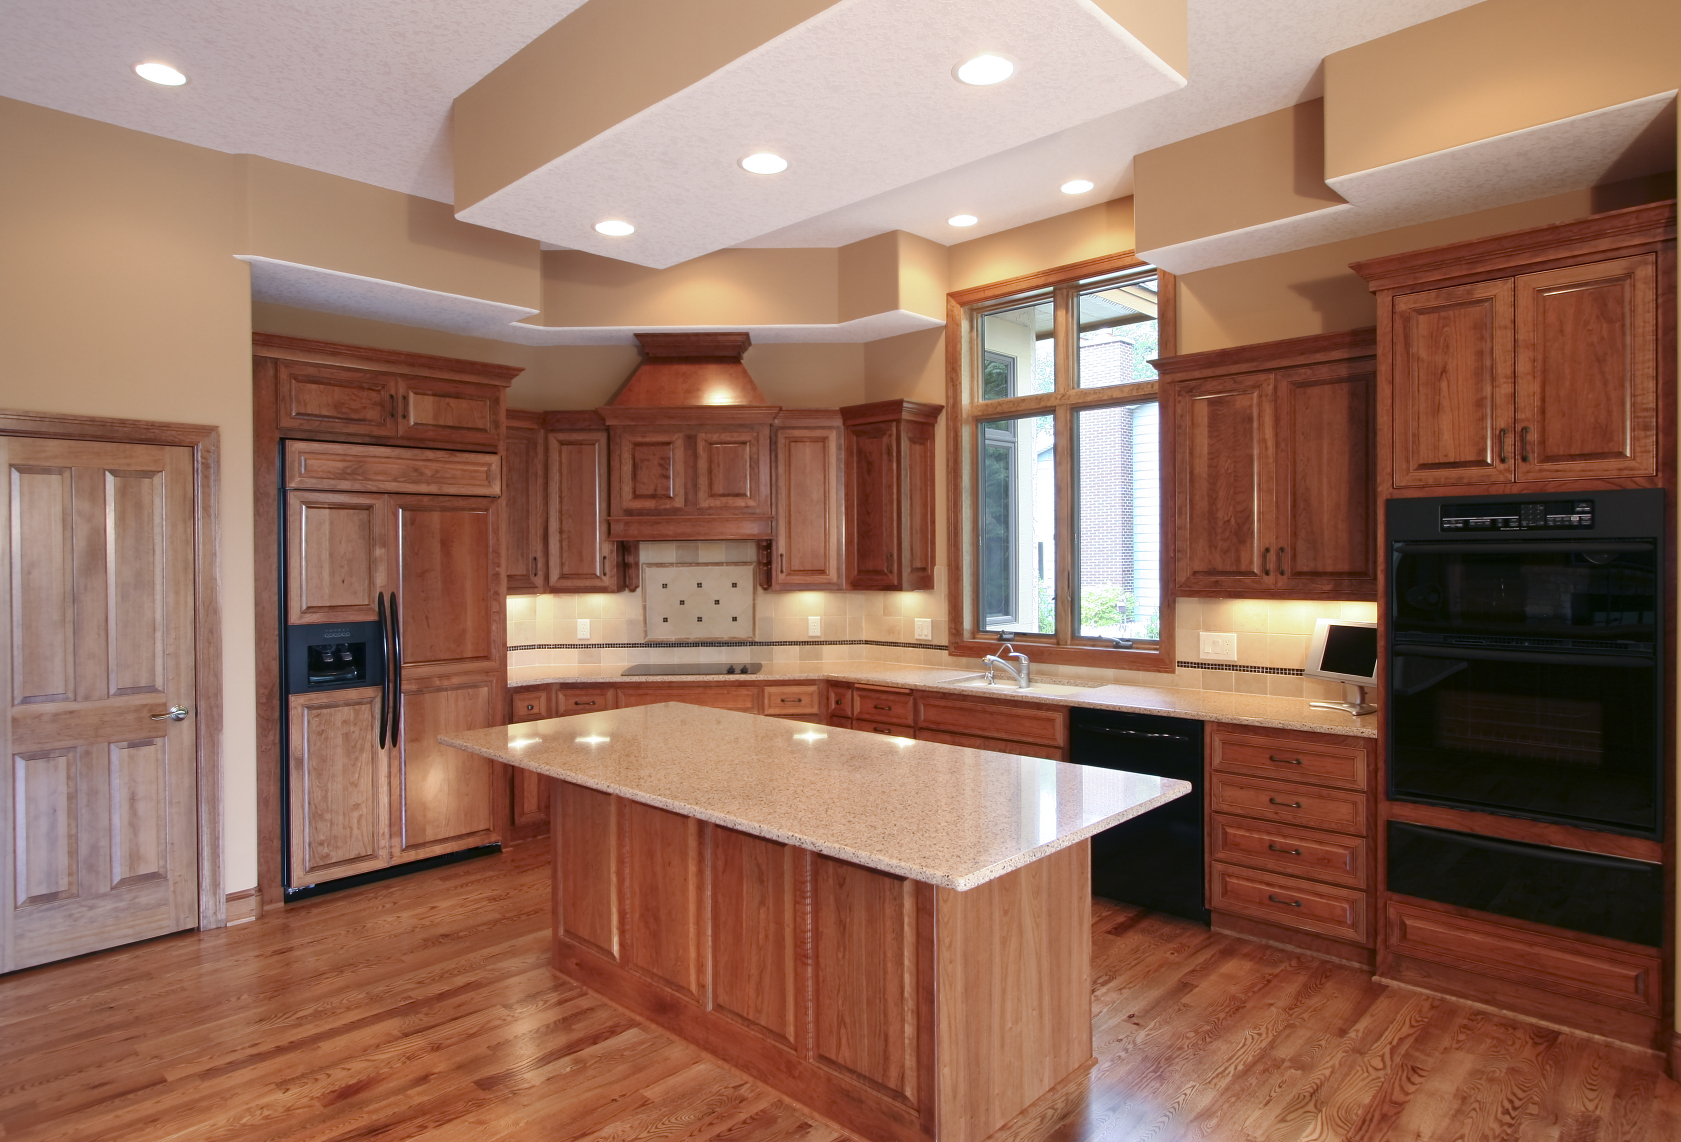 49 ontemporary High-nd Natural Wood Kitchen Designs - ^